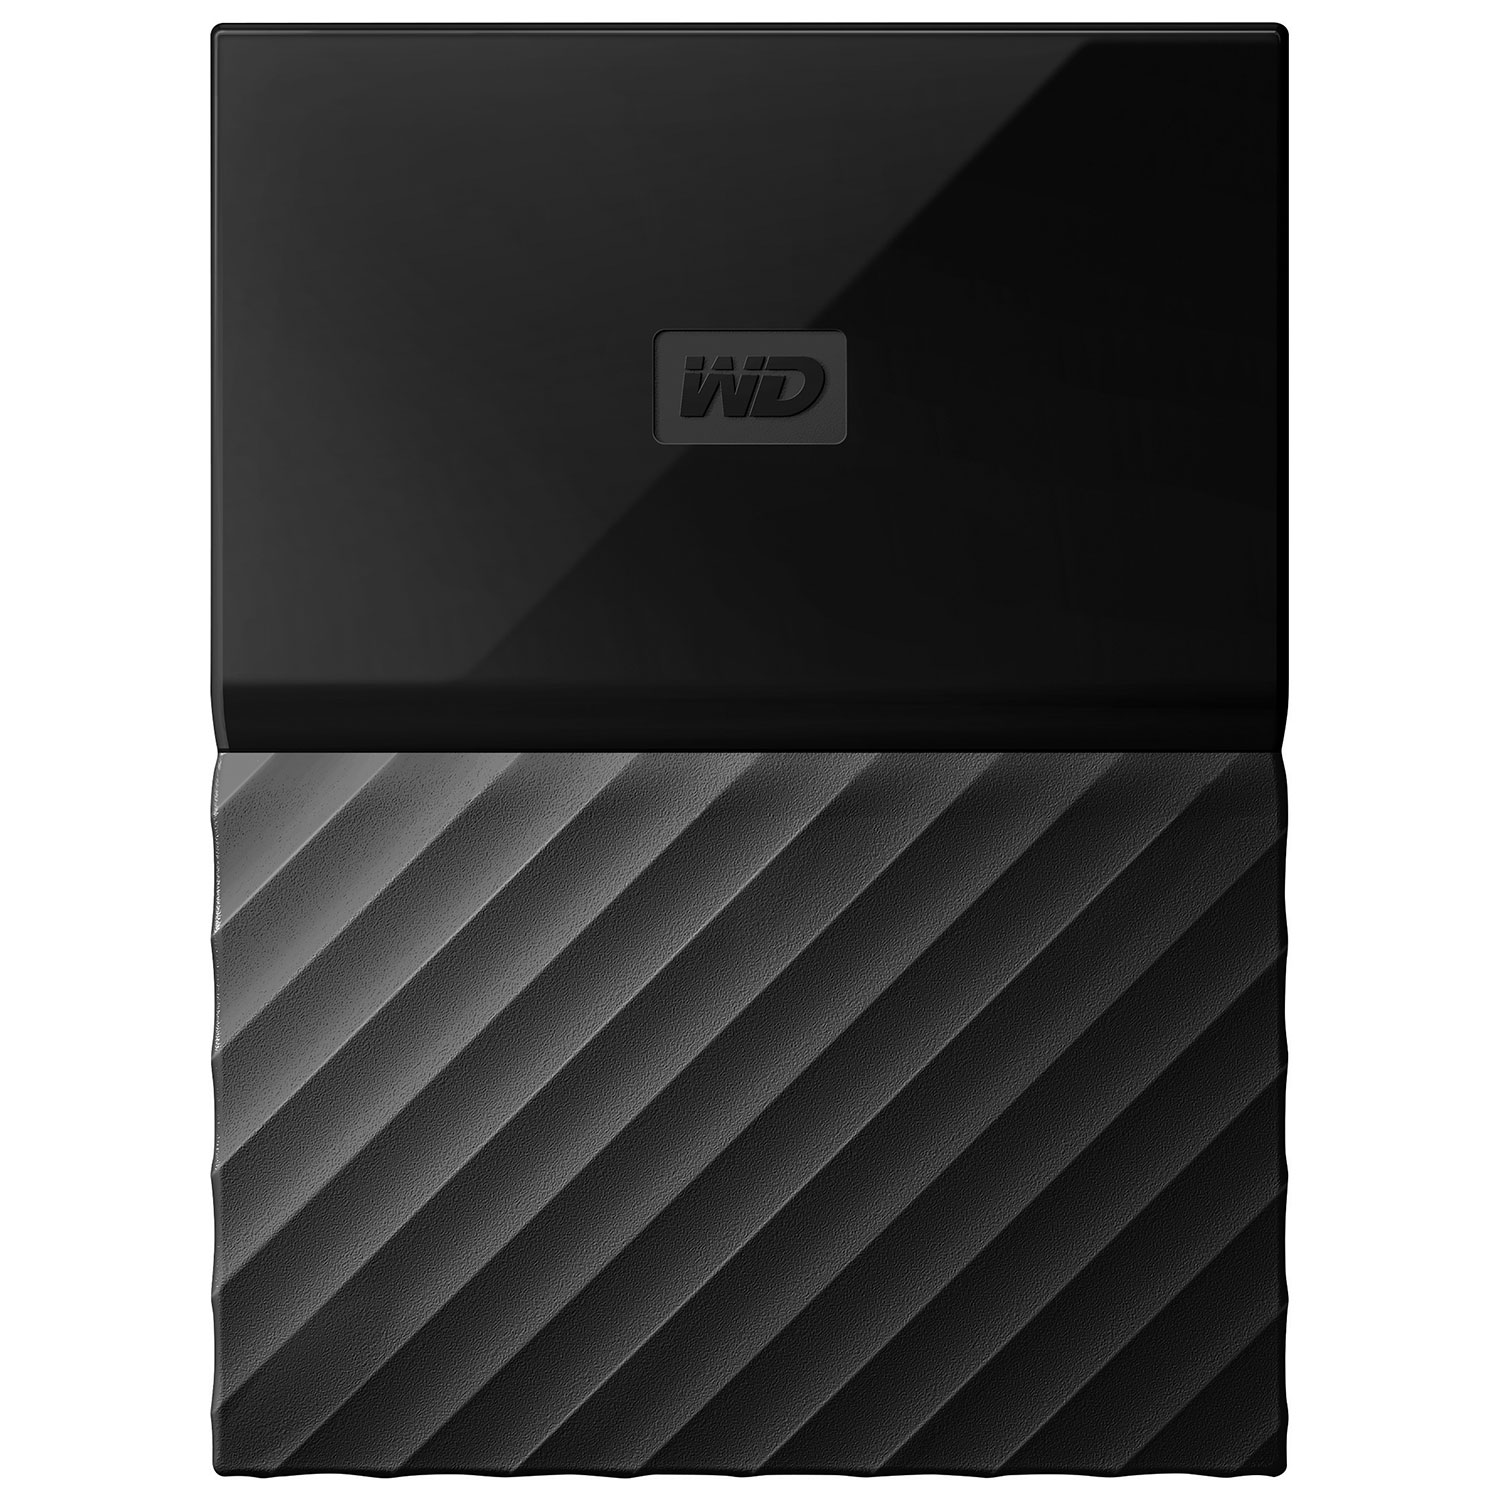 WD My Passport 1TB 2.5 USB 3.0 Portable External Hard Drive (WDBYNN0010BBK-WESN)  - Black   Portable Hard Drives - Best Buy Canada ebbc4cb630ce